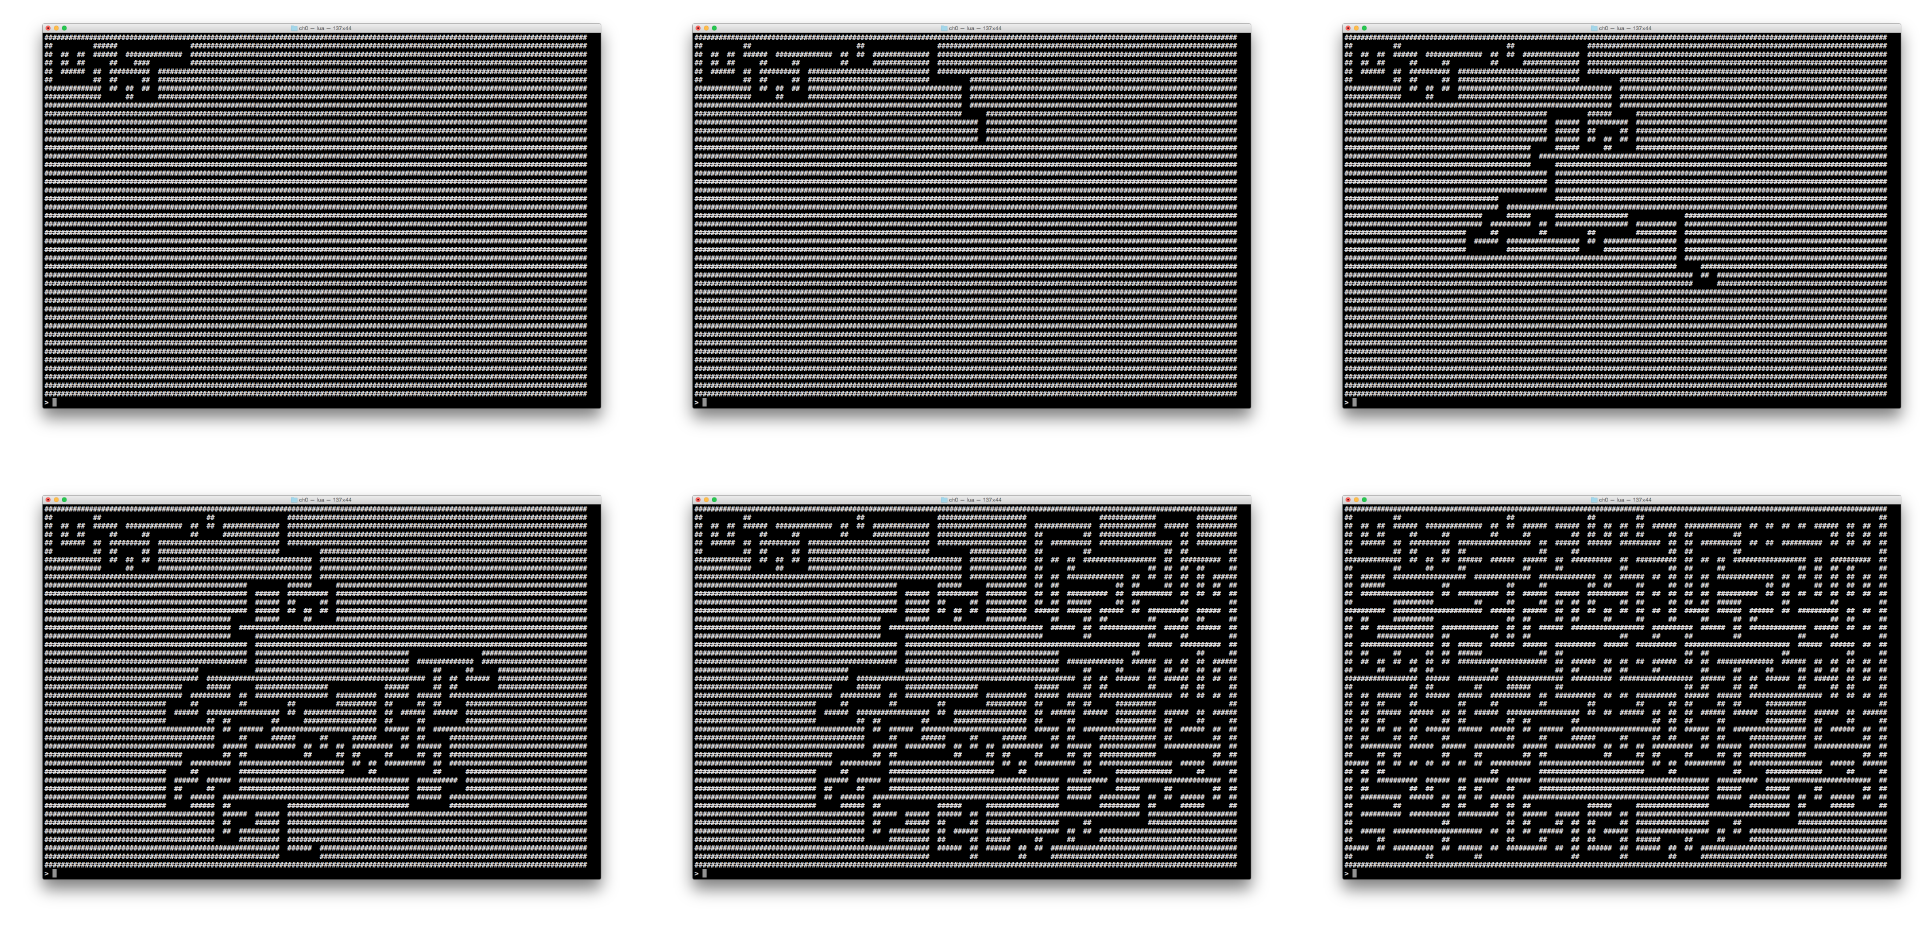 A time-lapse sequence of our maze generation. These images were created by using a modified version of the code in this chapter.